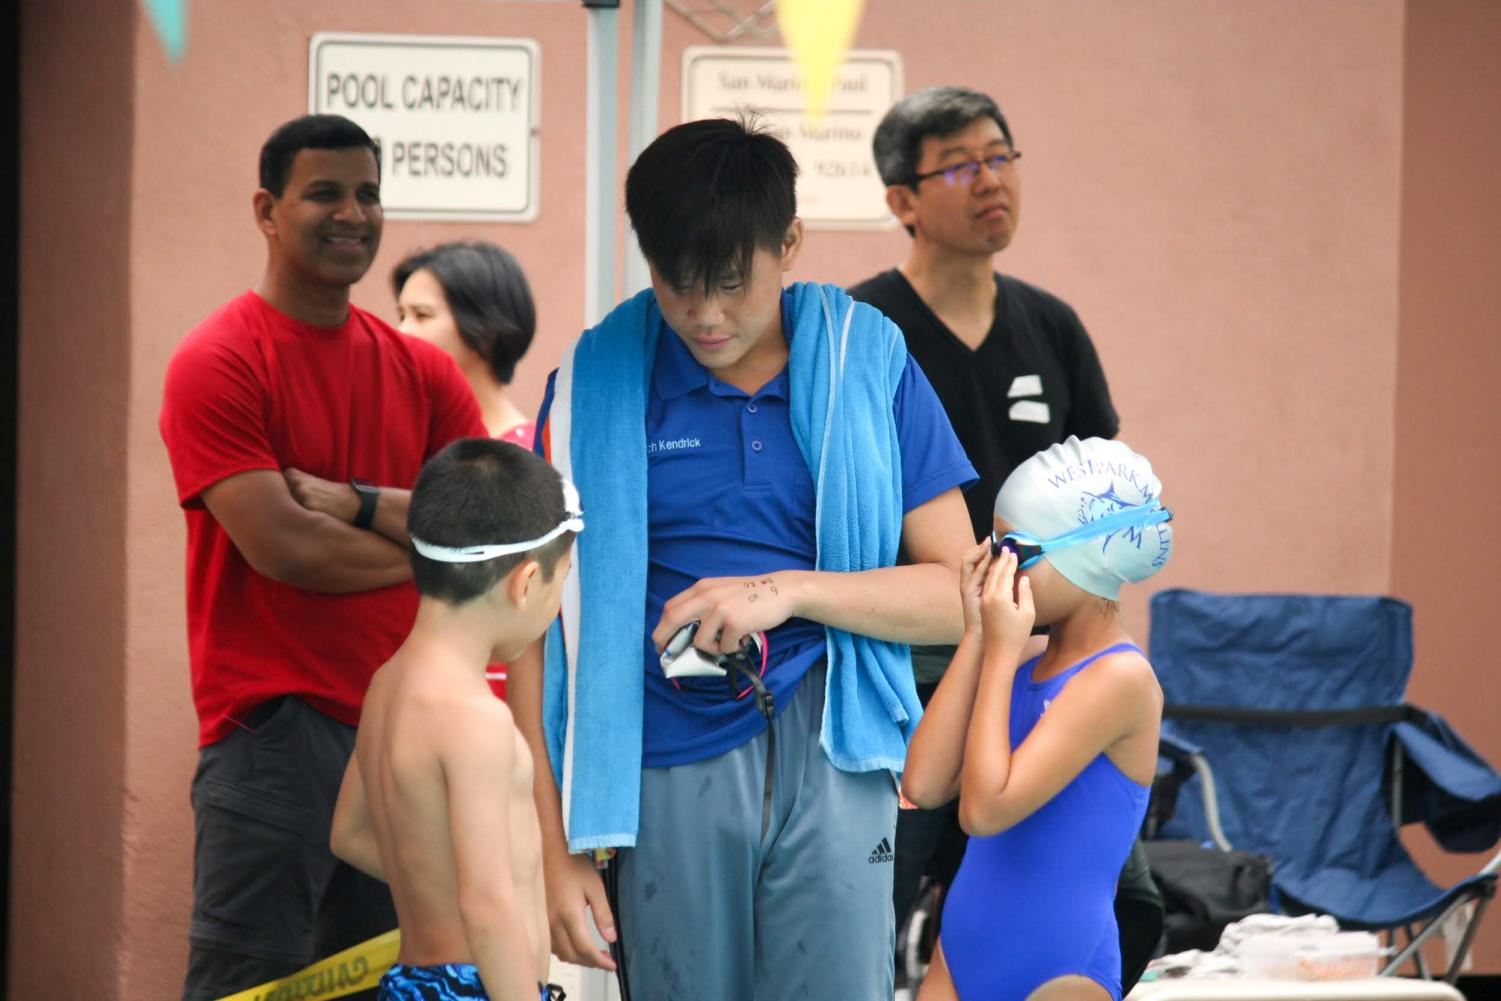 HUDDLE UP: Junior Kendrick Pham shares his expertise with a couple of young swimmers.